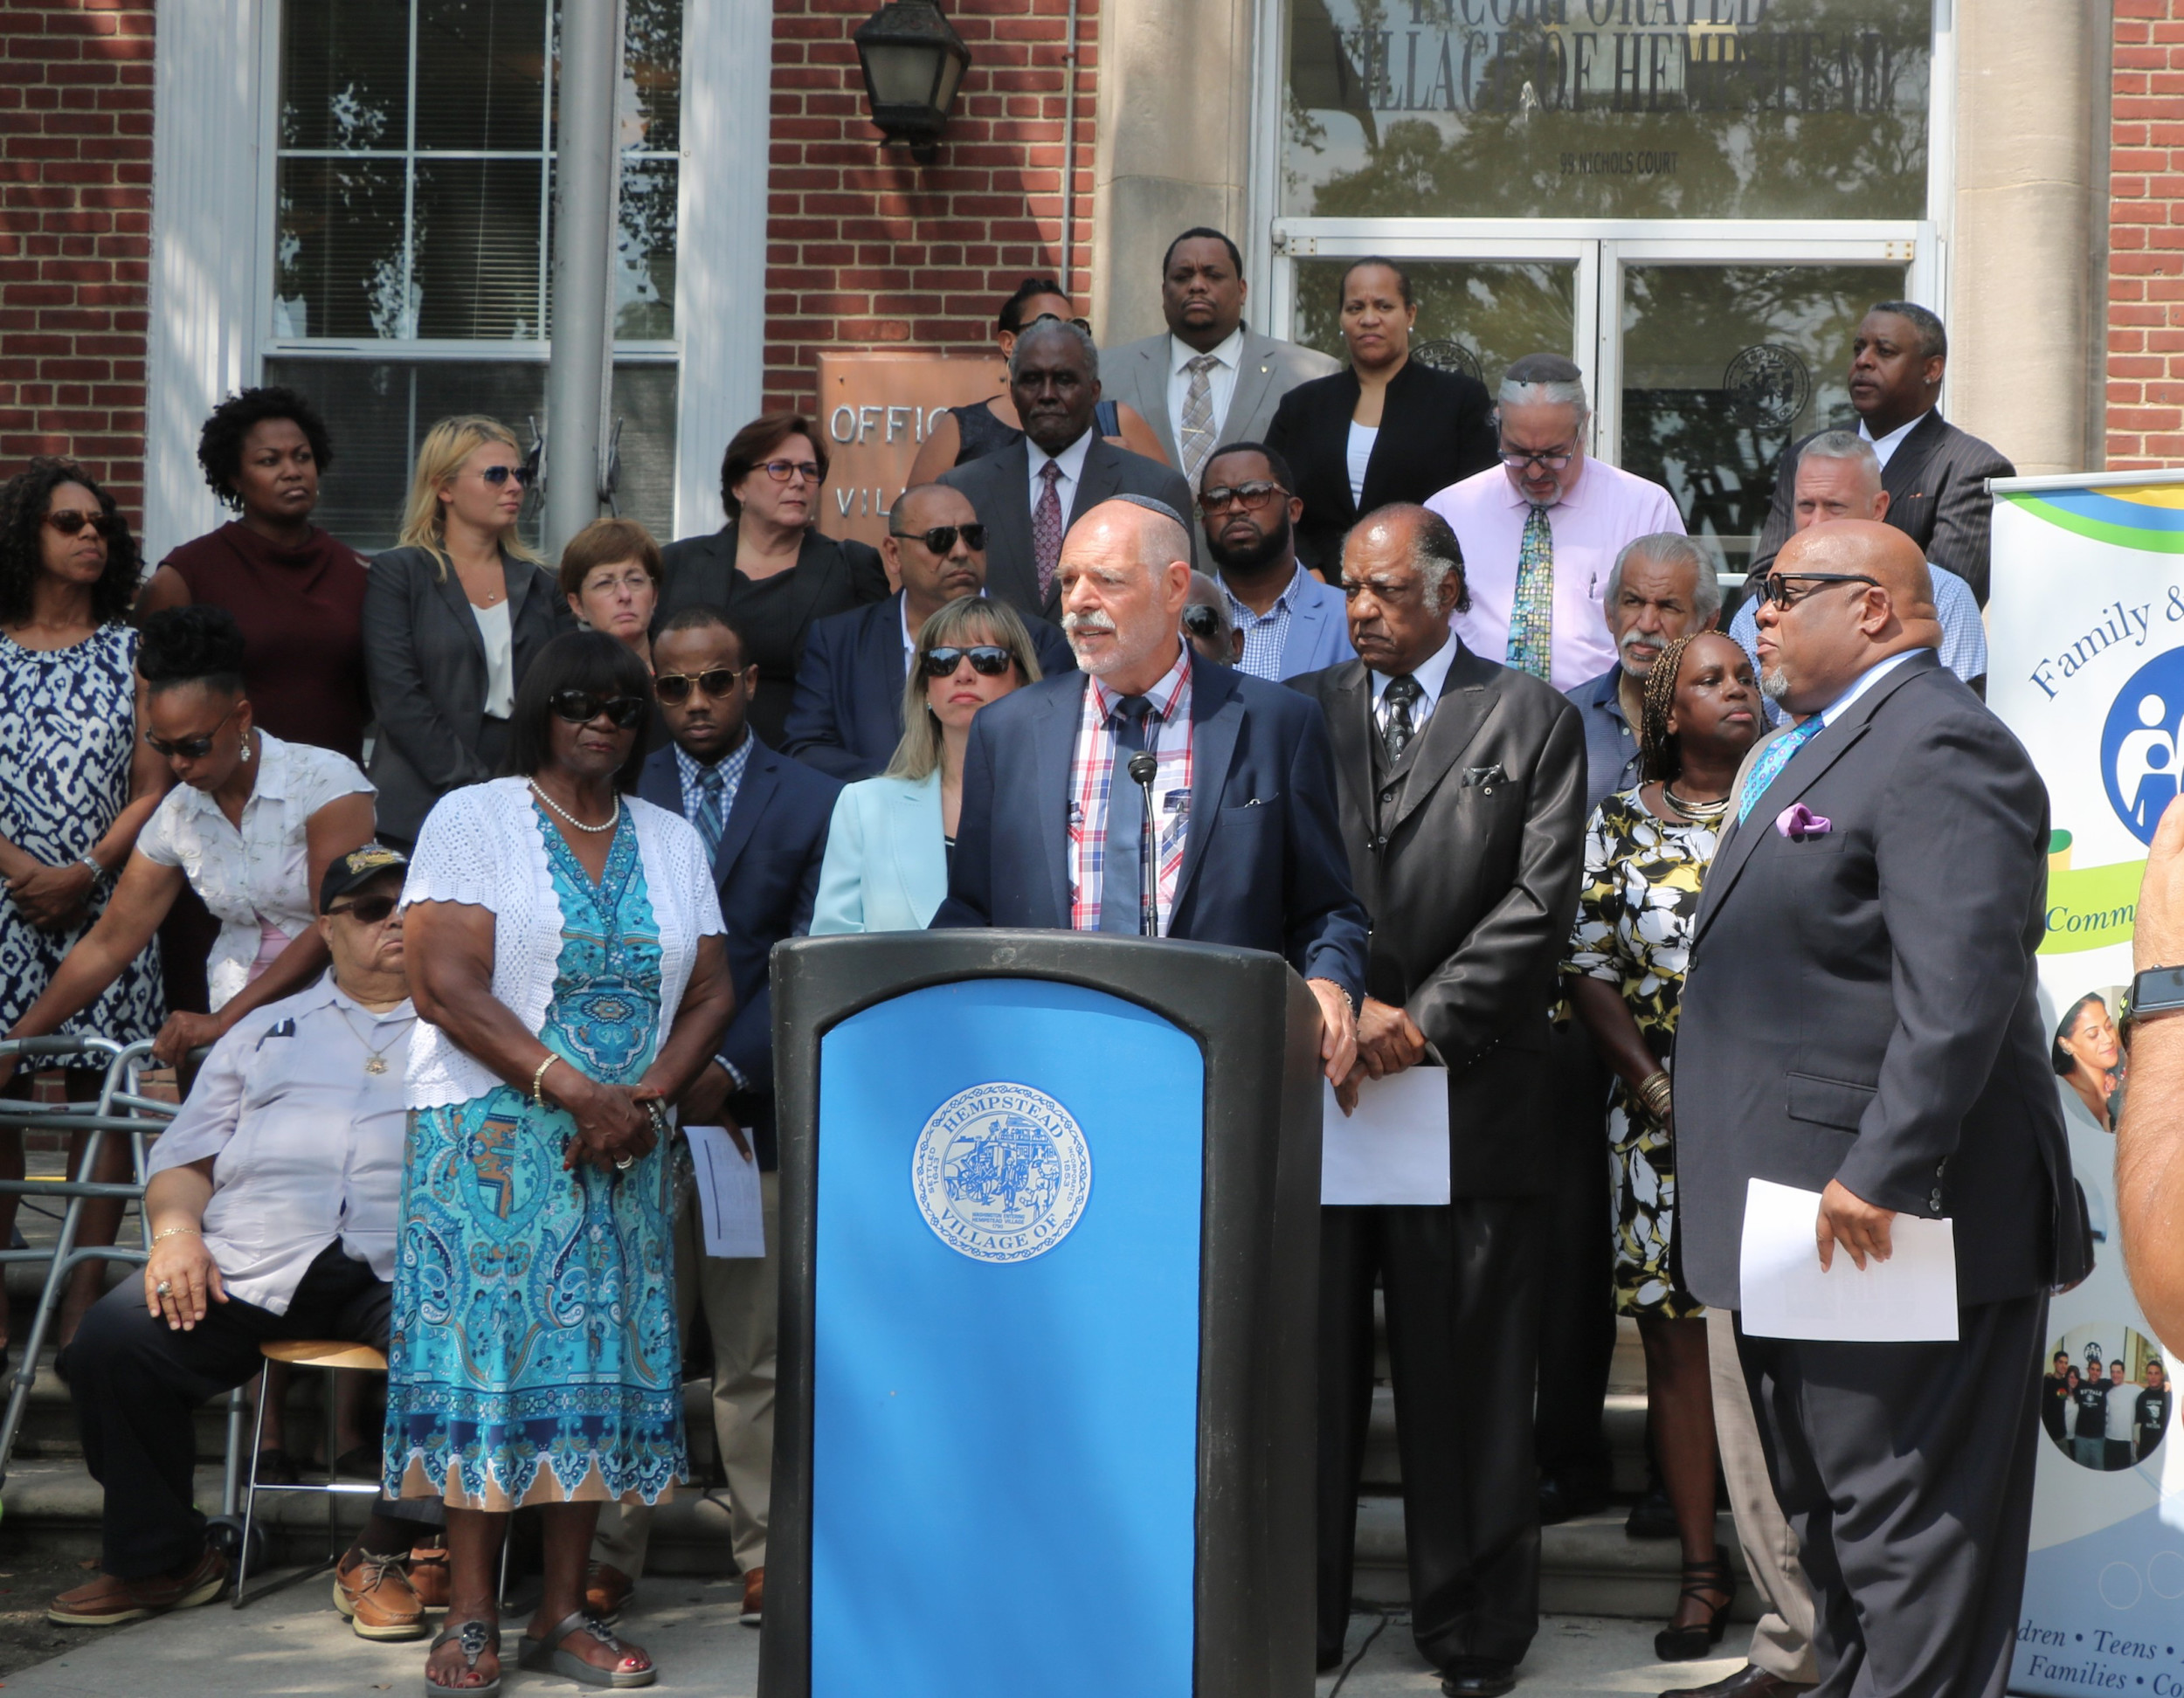 Rabbi Art Vernon, co-chair of the Black-Jewish Coalition for  Justice spoke at a peace rally organized by the coalition in Hempstead village on Aug. 22. Vernon is a rabbi at Congregation Shaaray Shalom in West Hempstead. Coalition co-chair Rev. Dr. William Watson is to his immediate right.